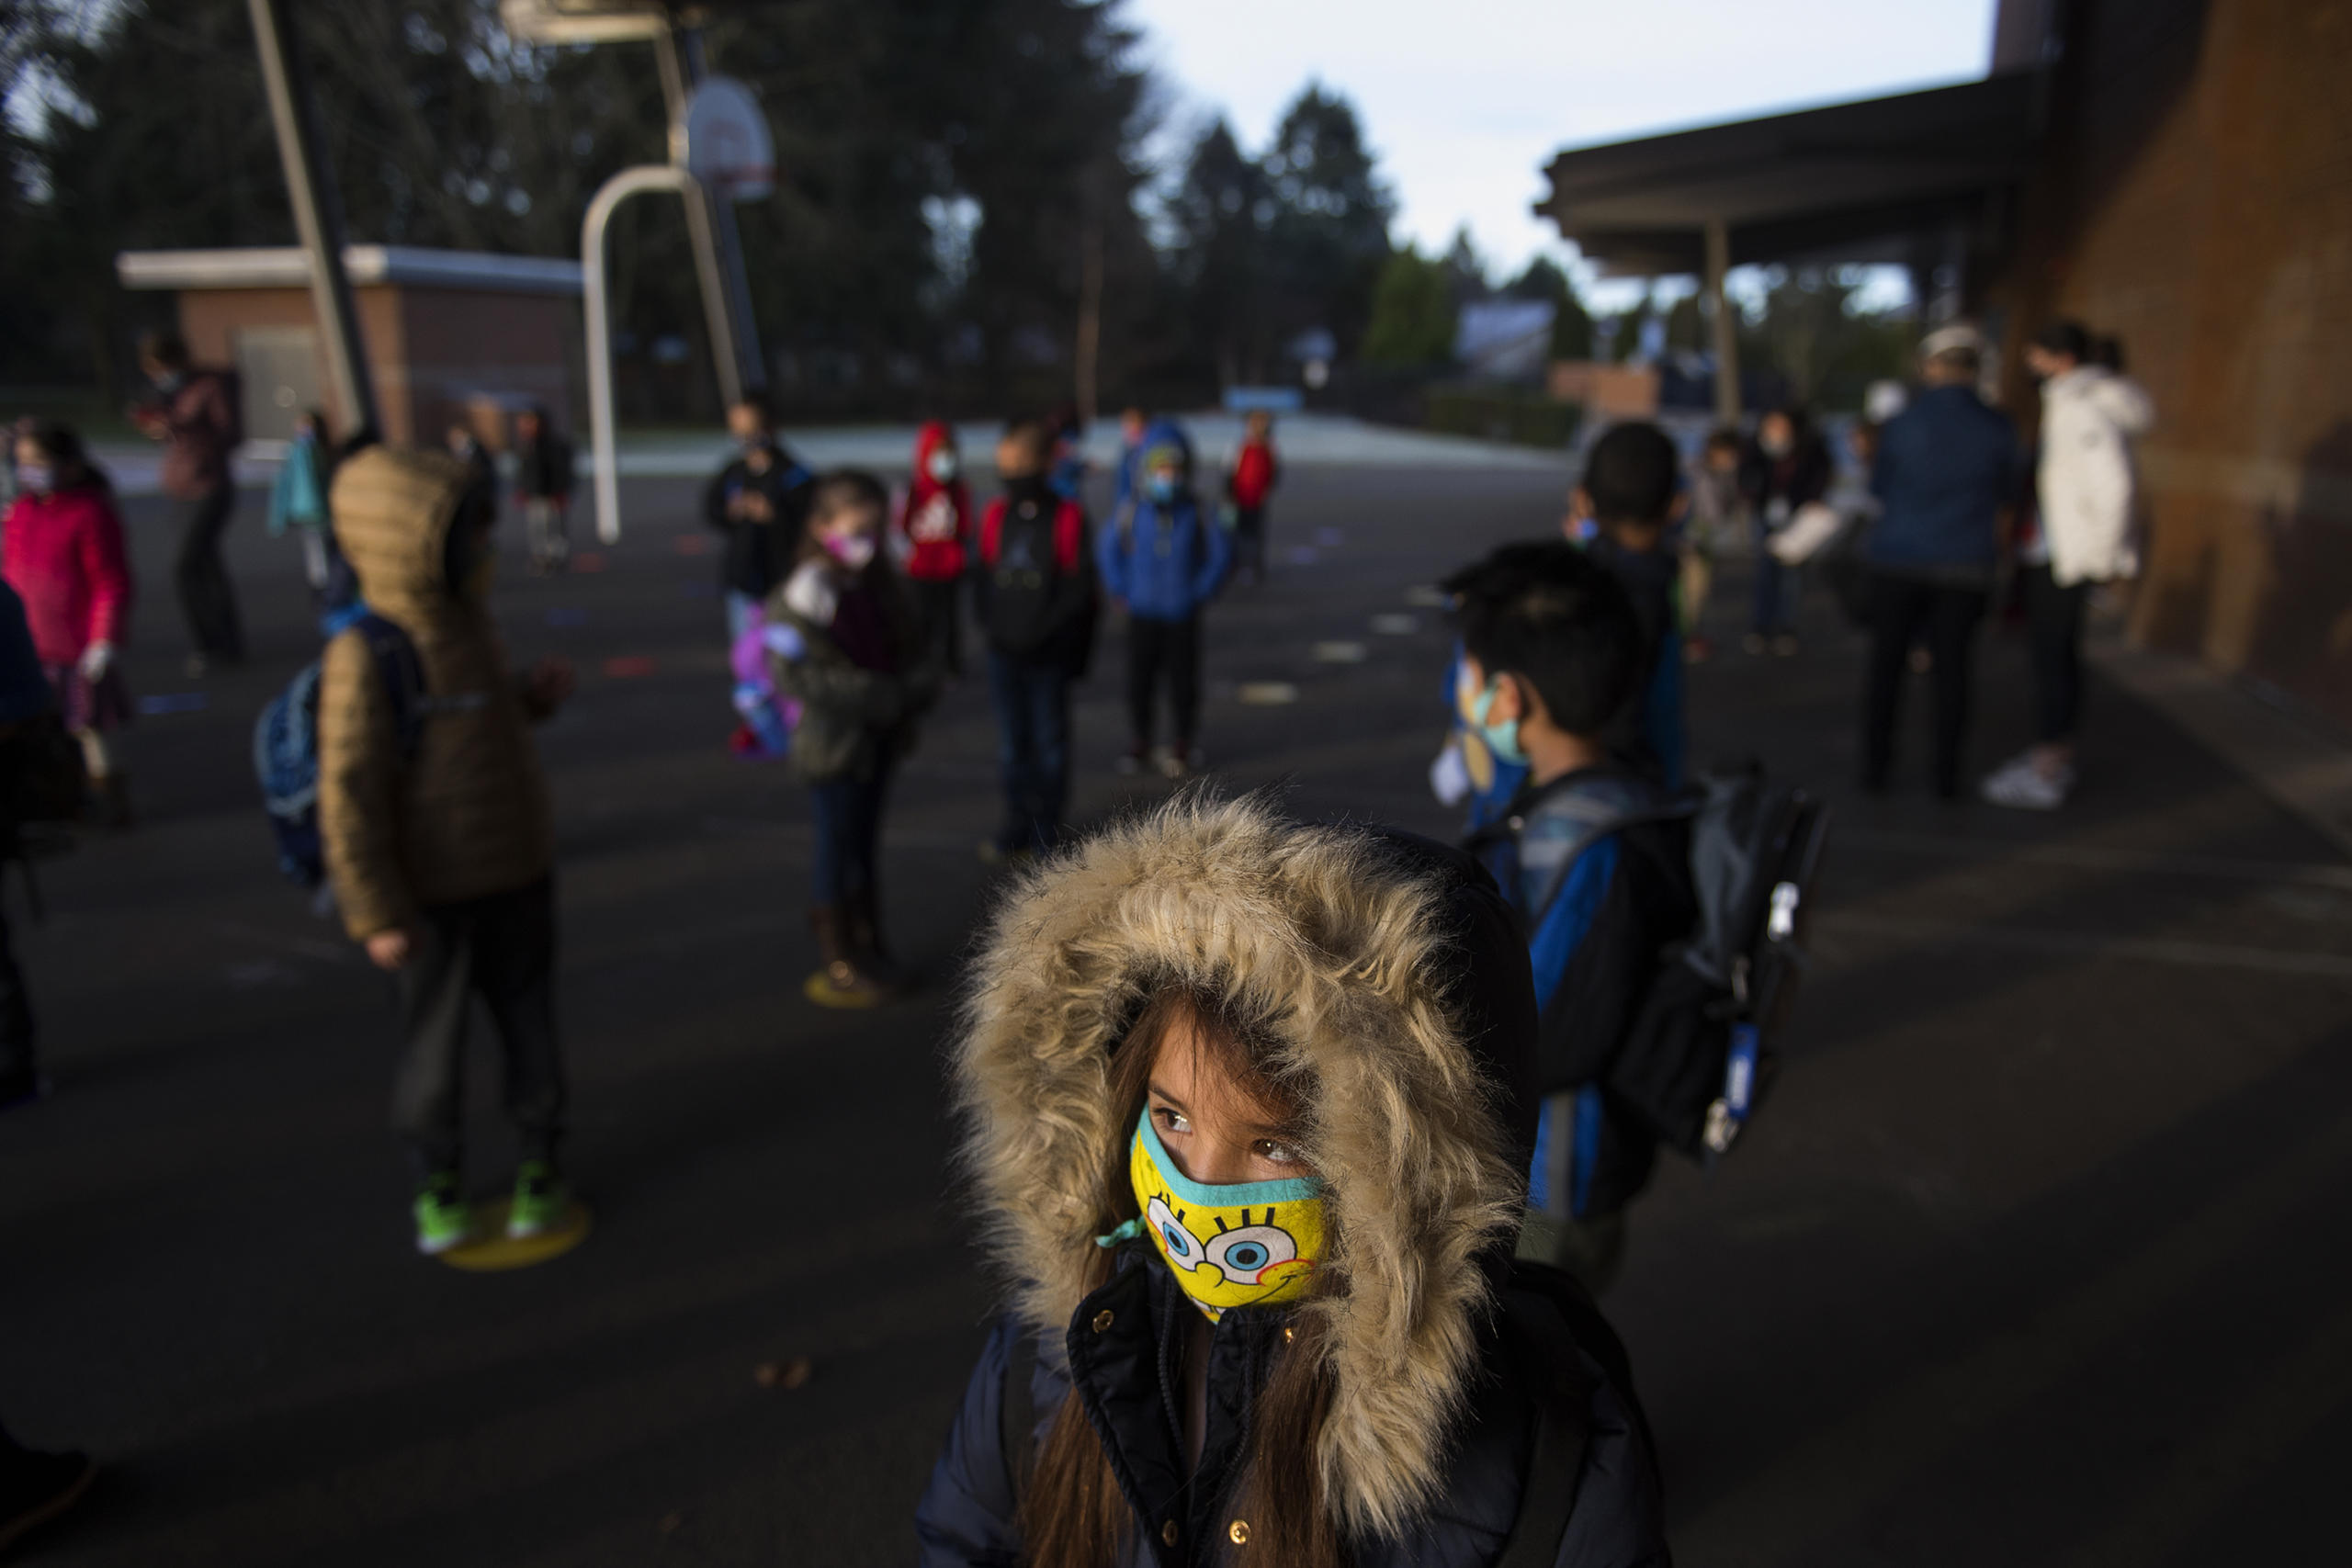 First-grader Mia Pierce, 6, bundles up in a coat before attending hybrid classes at Crestline Elementary School on Tuesday morning, January 19, 2021. More Clark County schools are welcoming students back to the classroom for hybrid learning. (Amanda Cowan/The Columbian)